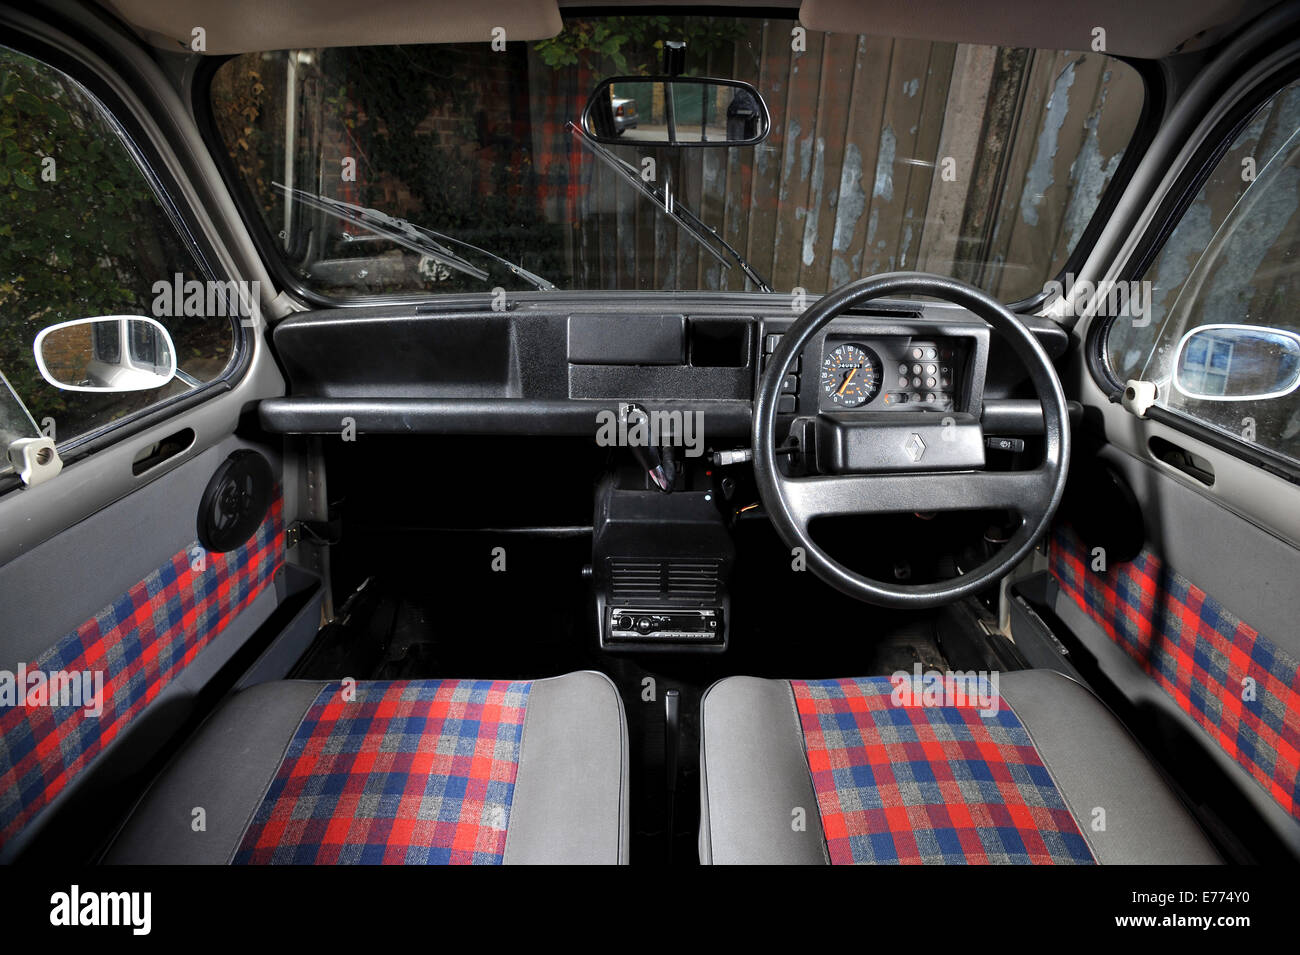 where to buy cheap chairs coccyx kneeling chair renault 4 classic french small car interior stock photo, royalty free image: 73301620 - alamy